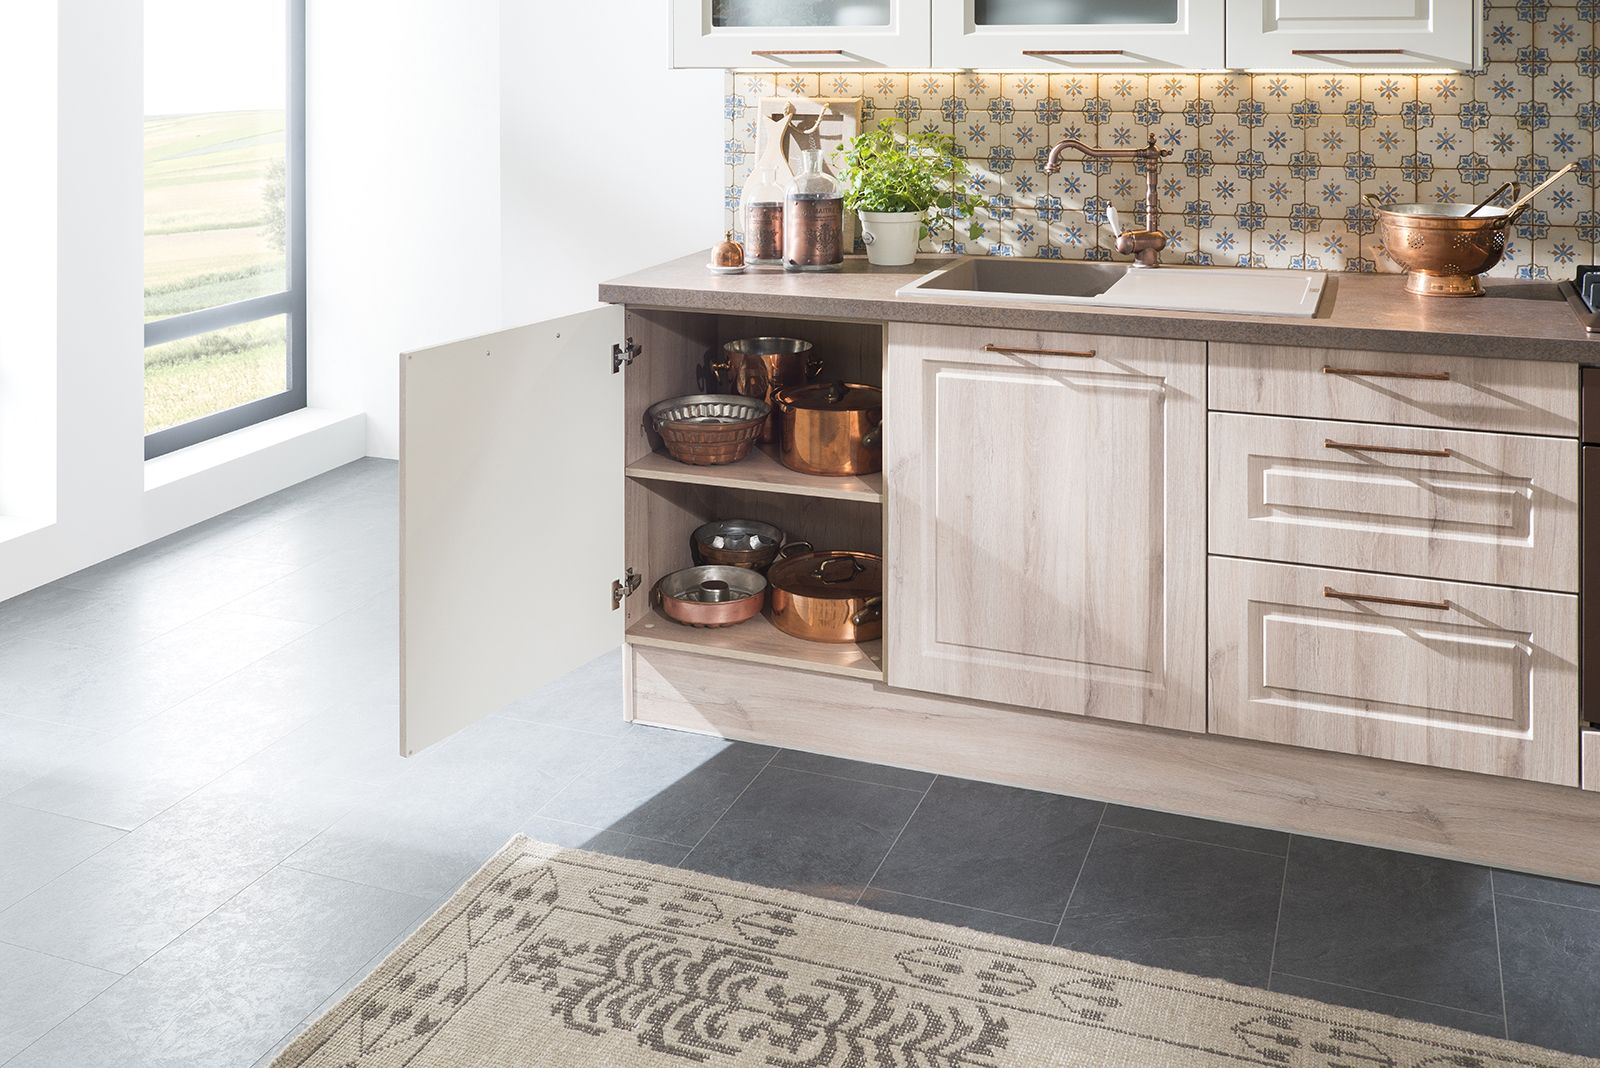 Pin by Connie Smith on Kitchen | Home decor, Home, Kitchen